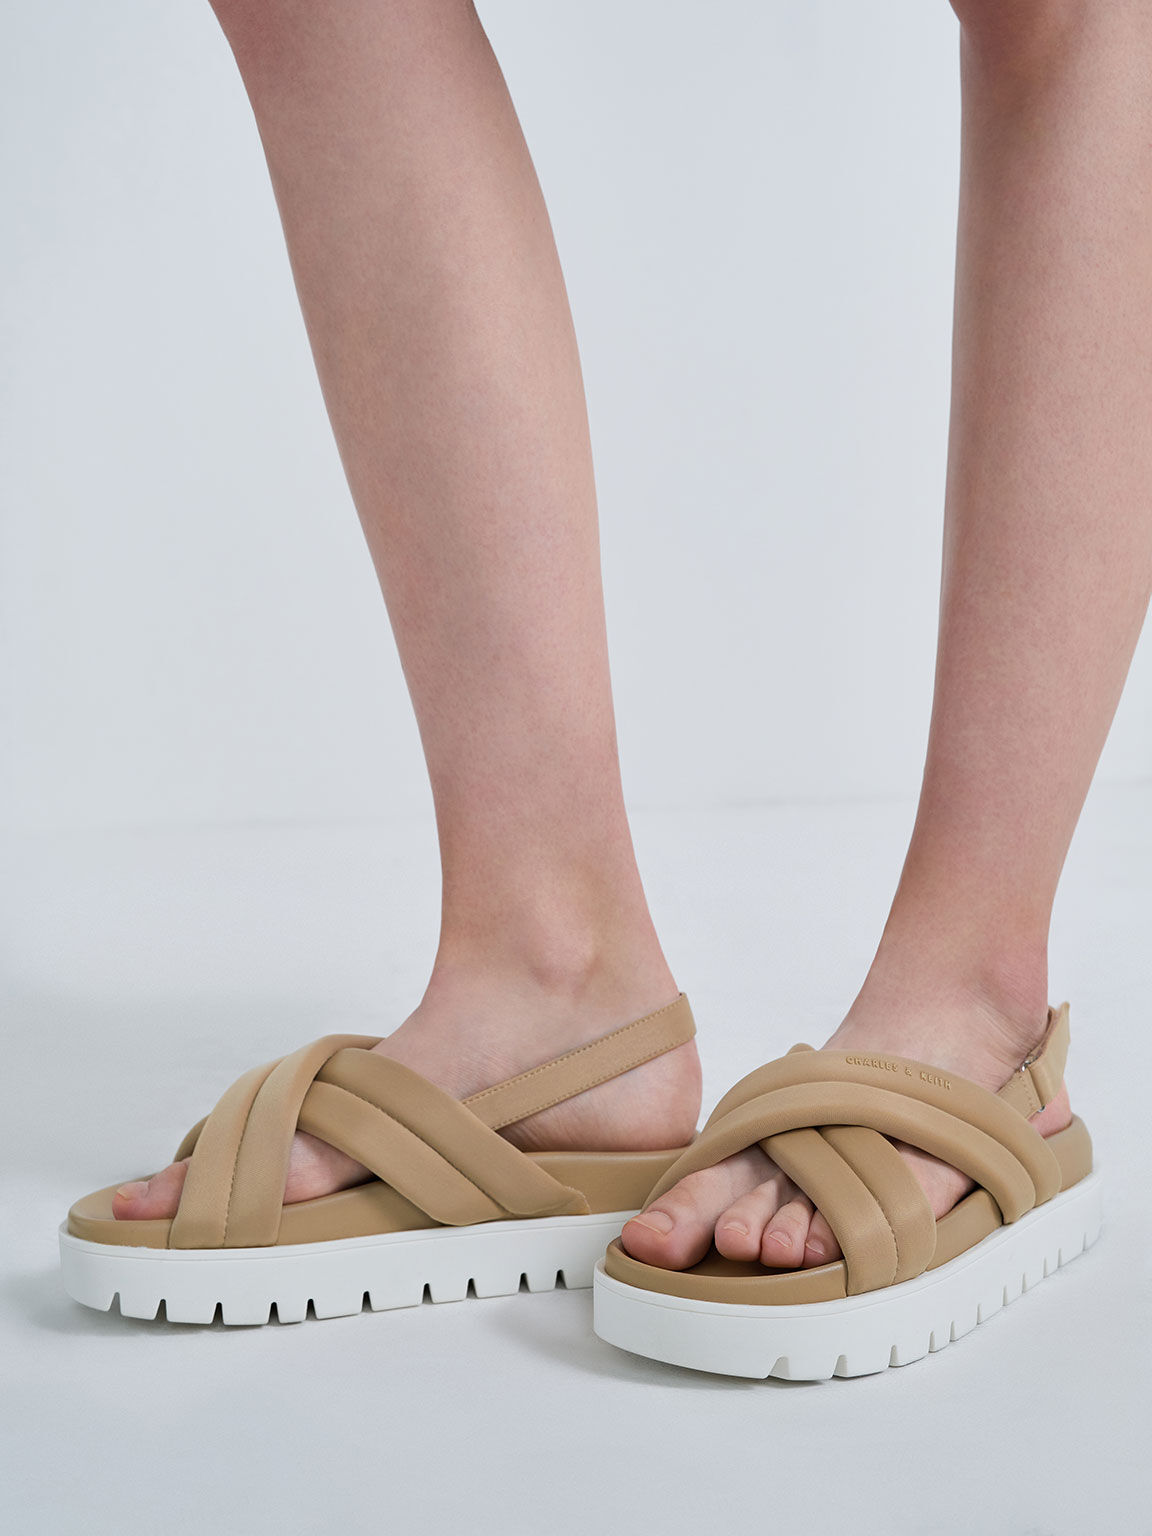 Recycled Polyester Padded Sports Sandals, Sand, hi-res